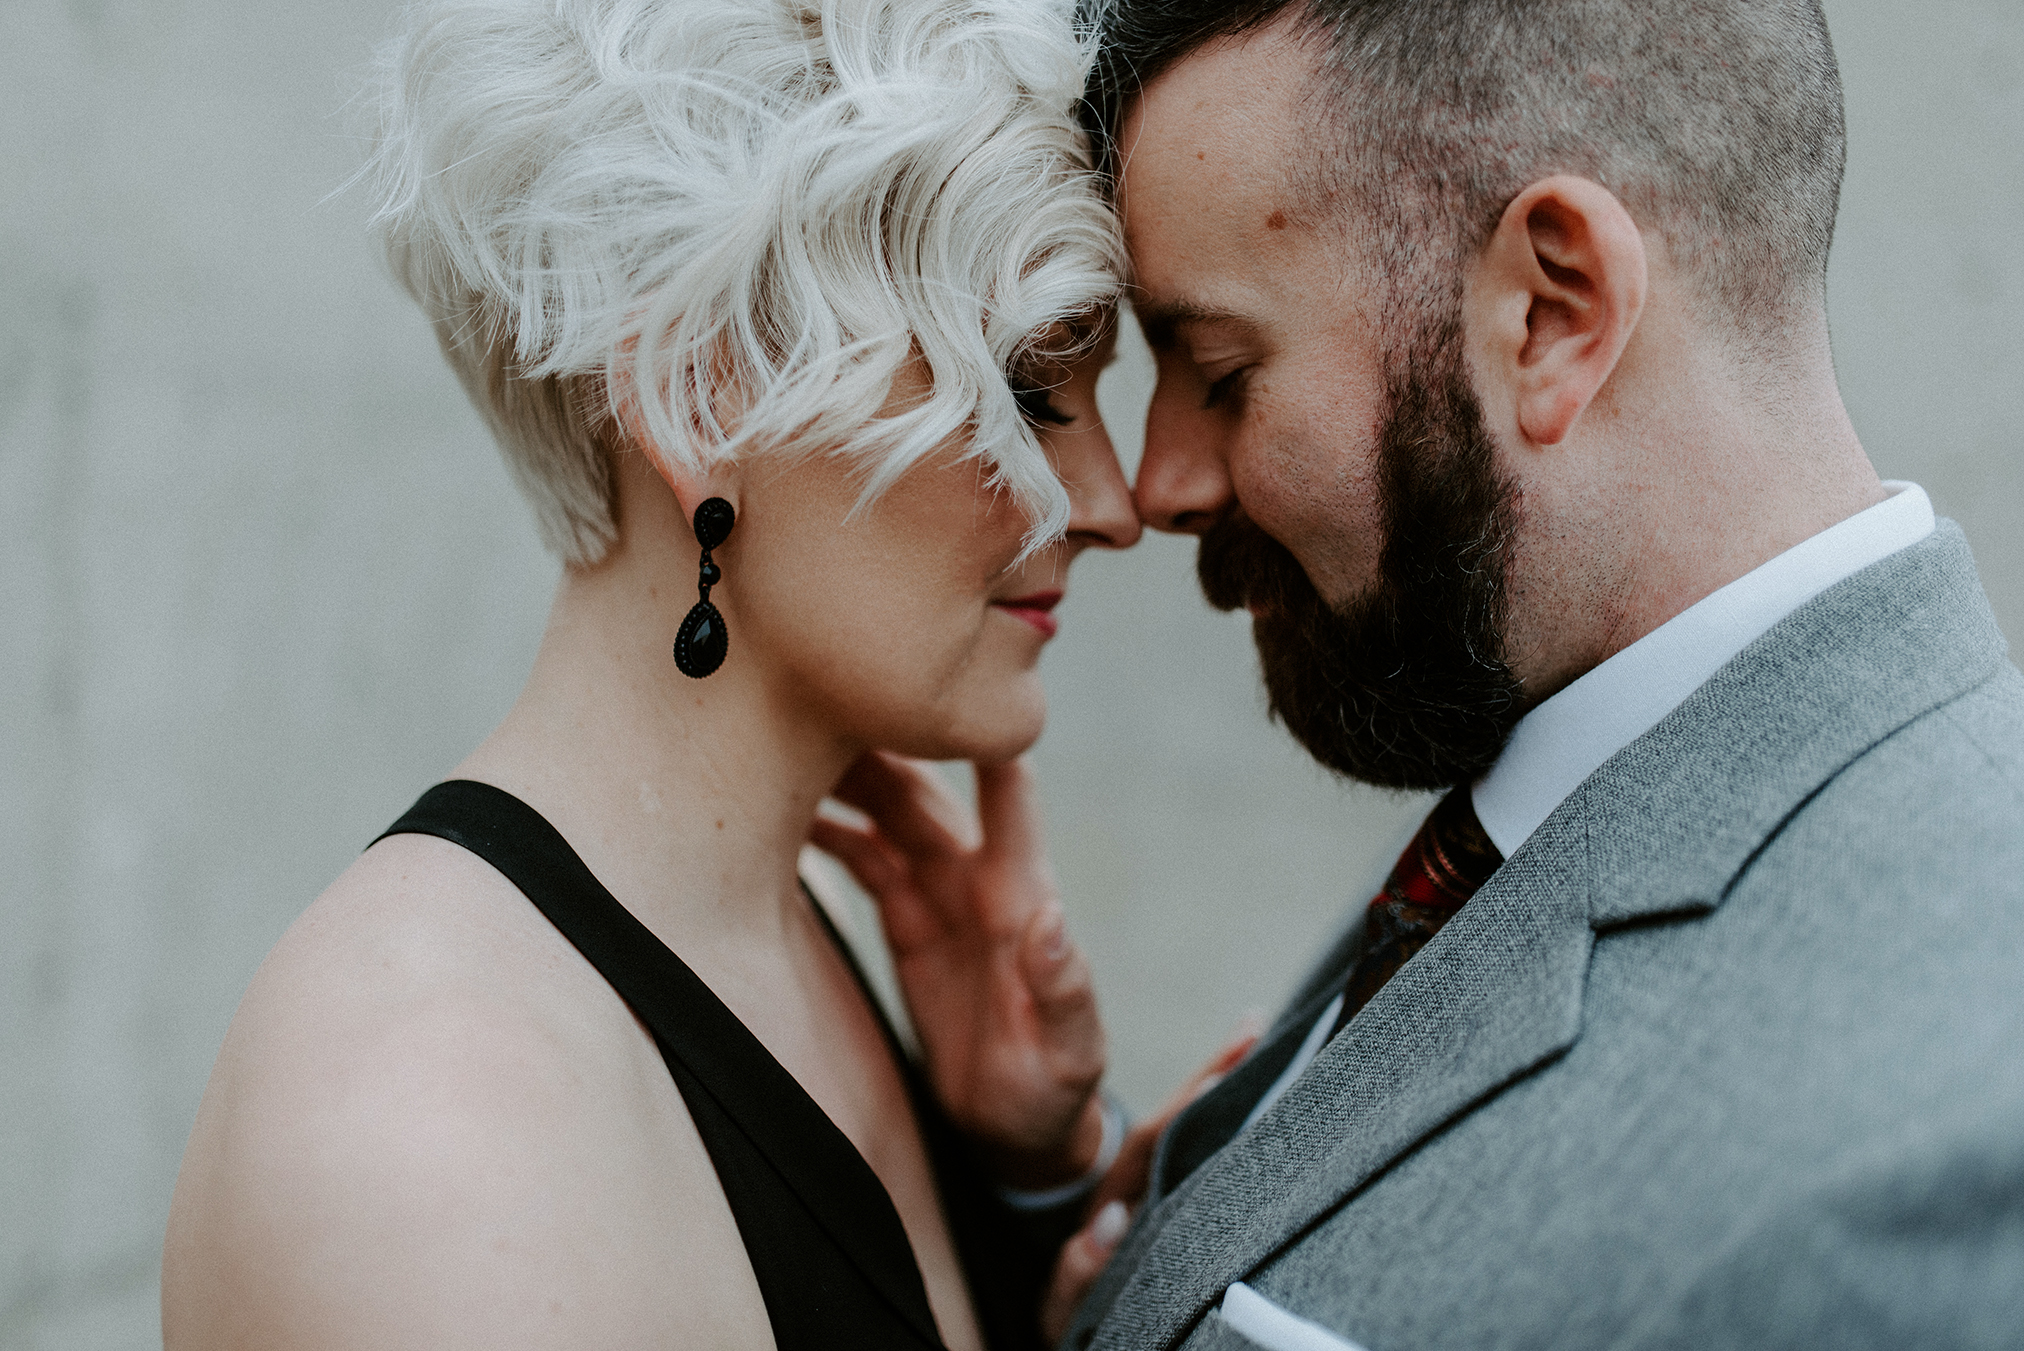 Saskatoon wedding photographer. Capturing the beauty of your love story as it is. Intimate weddings and elopements.